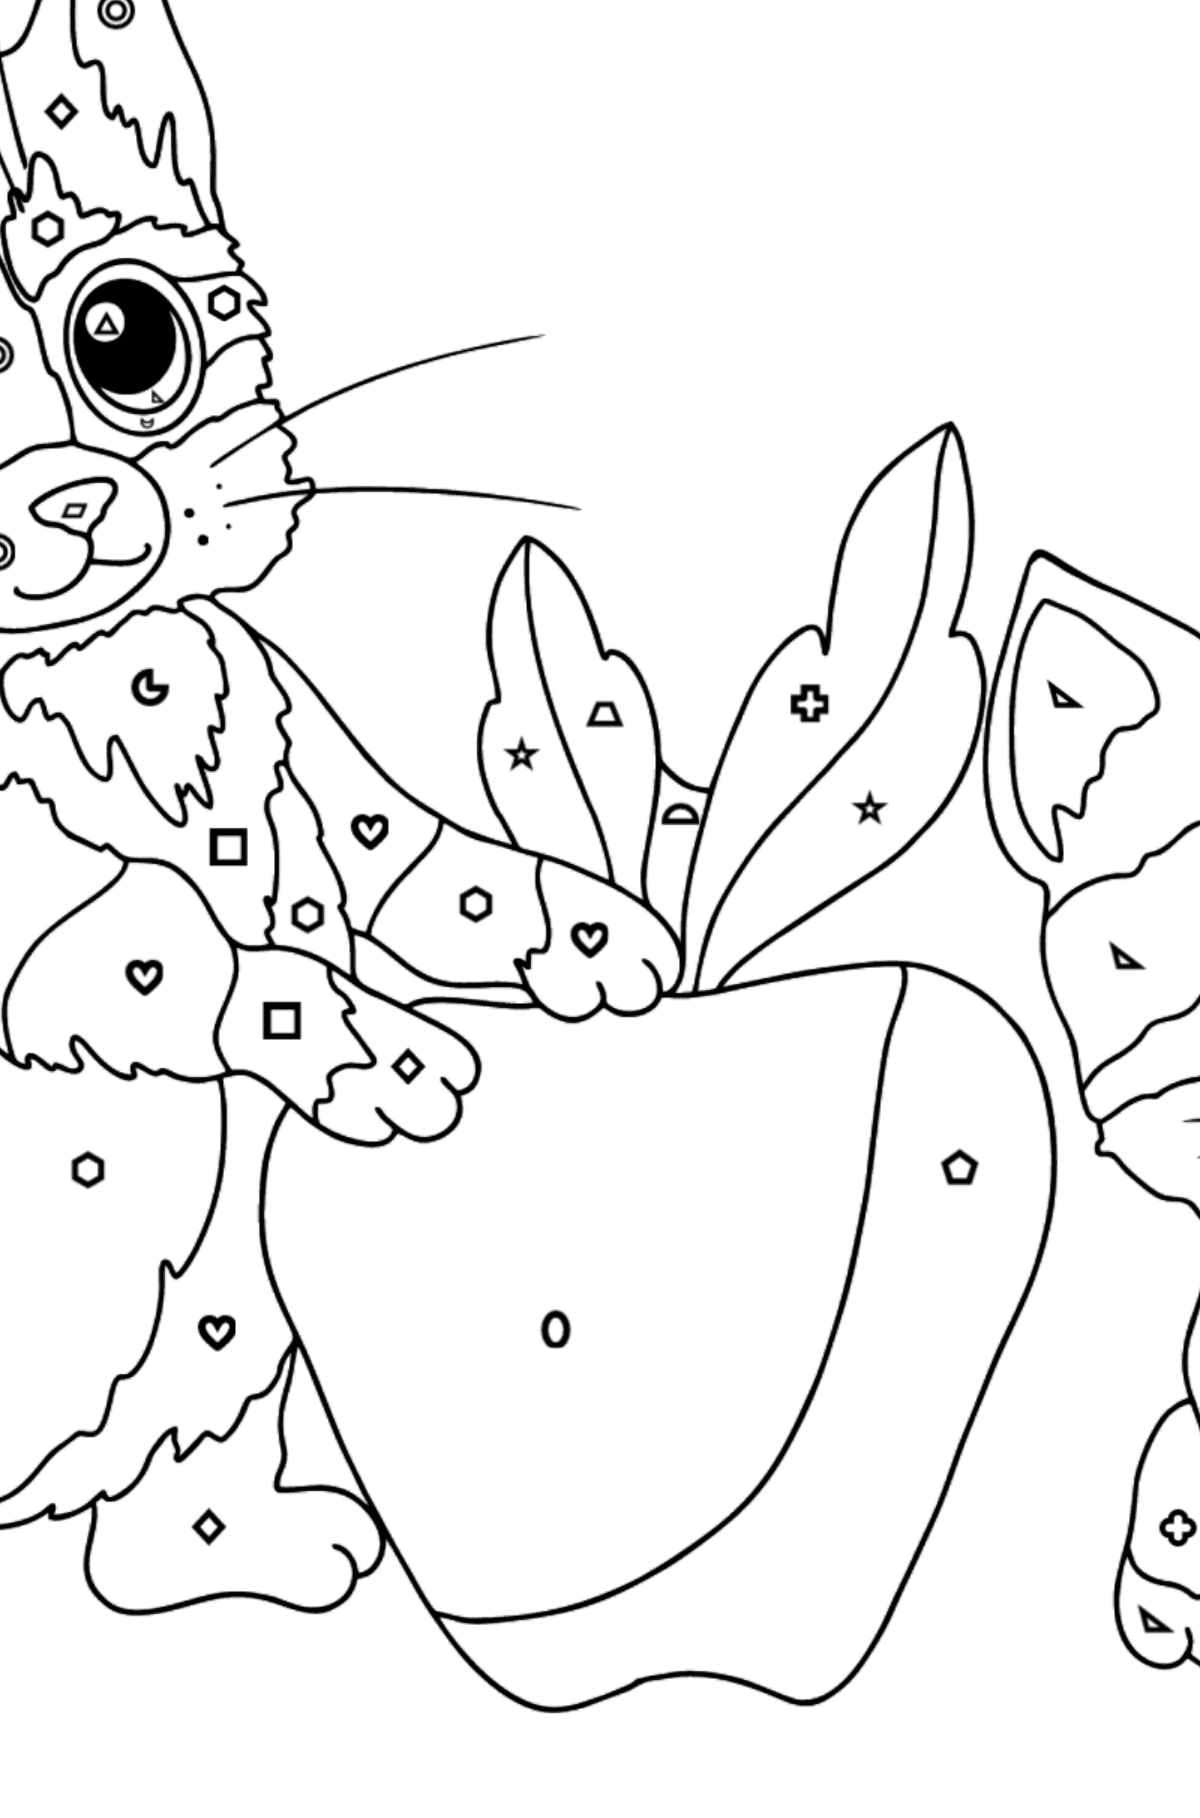 Coloring Page - Kittens are Having Fun with a Red Apple - Coloring by Geometric Shapes for Kids